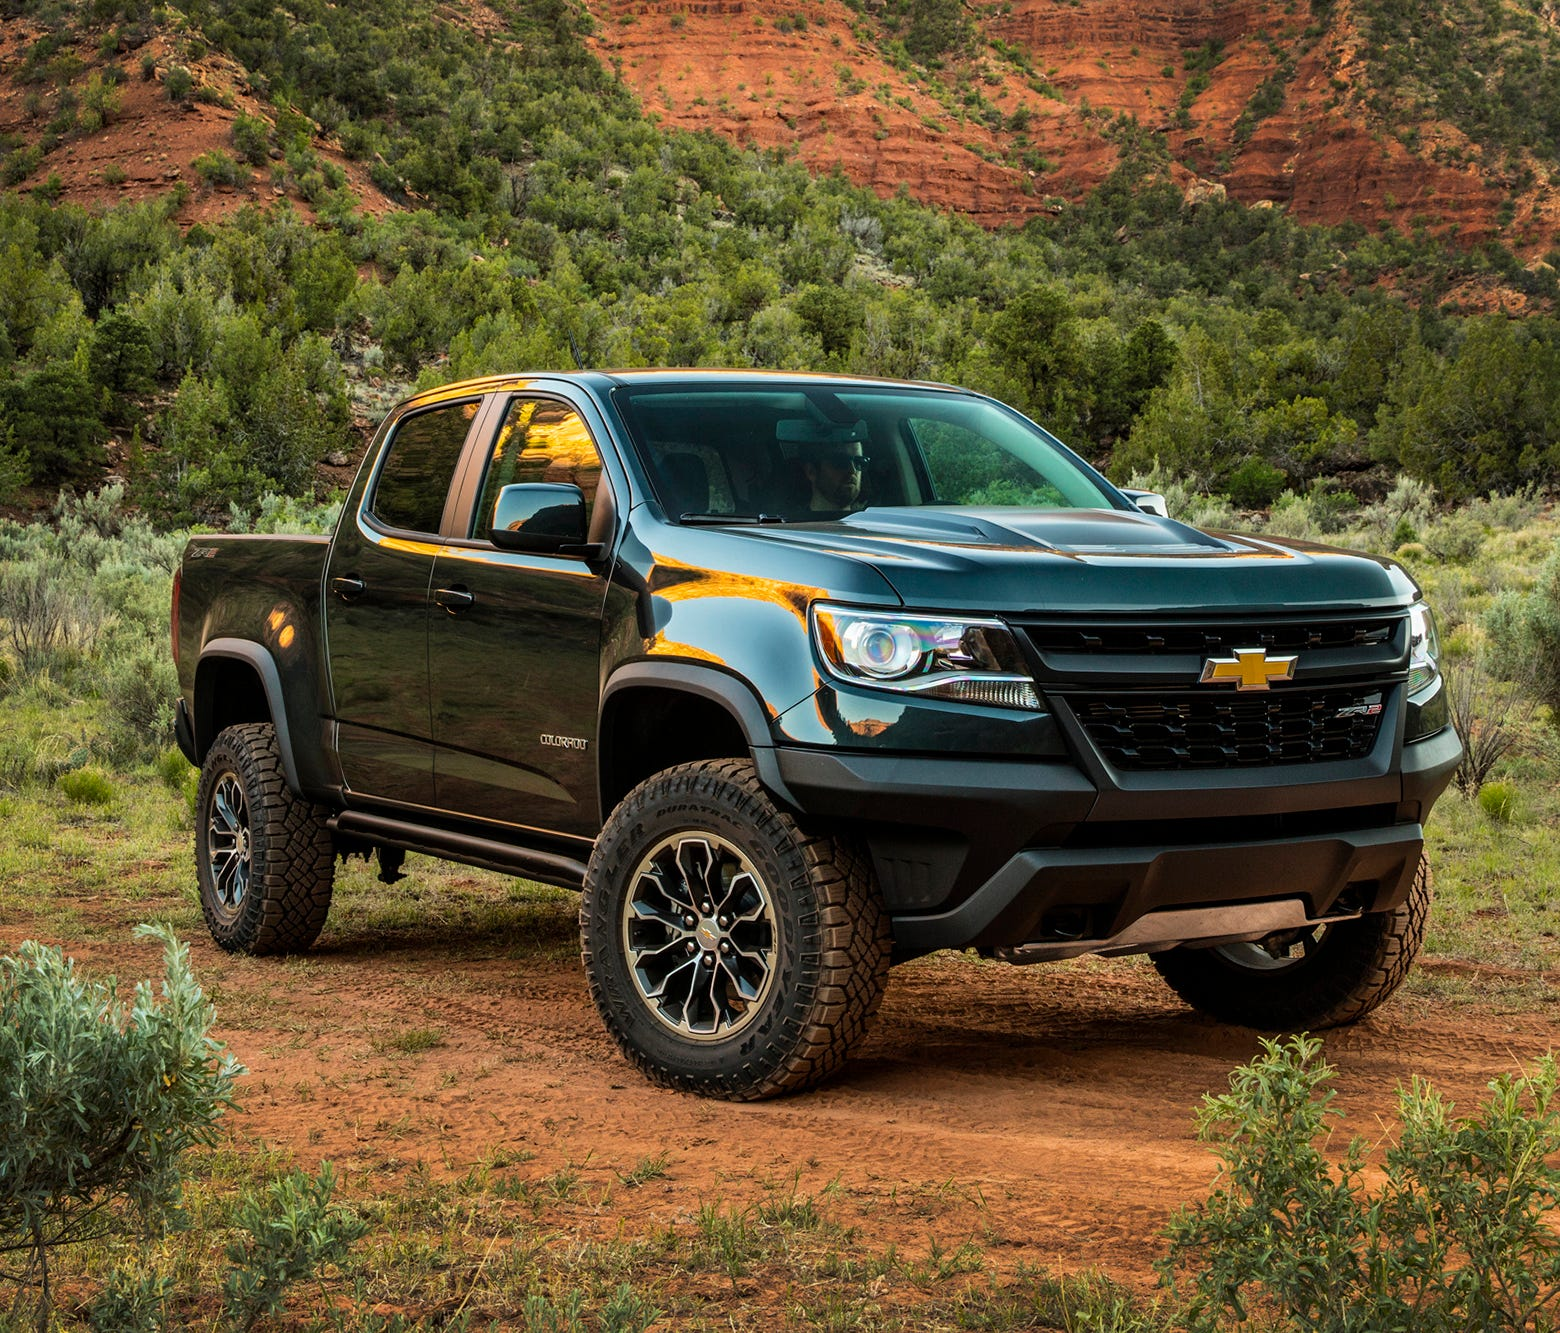 This update photo provided by Chevrolet shows the new 2018 Chevrolet Colorado ZR2. Full-size trucks such as the Chevrolet Silverado and Ford F-150 are hugely popular. But not everyone needs that much capability from a new pickup.  Chevrolet's smart-l